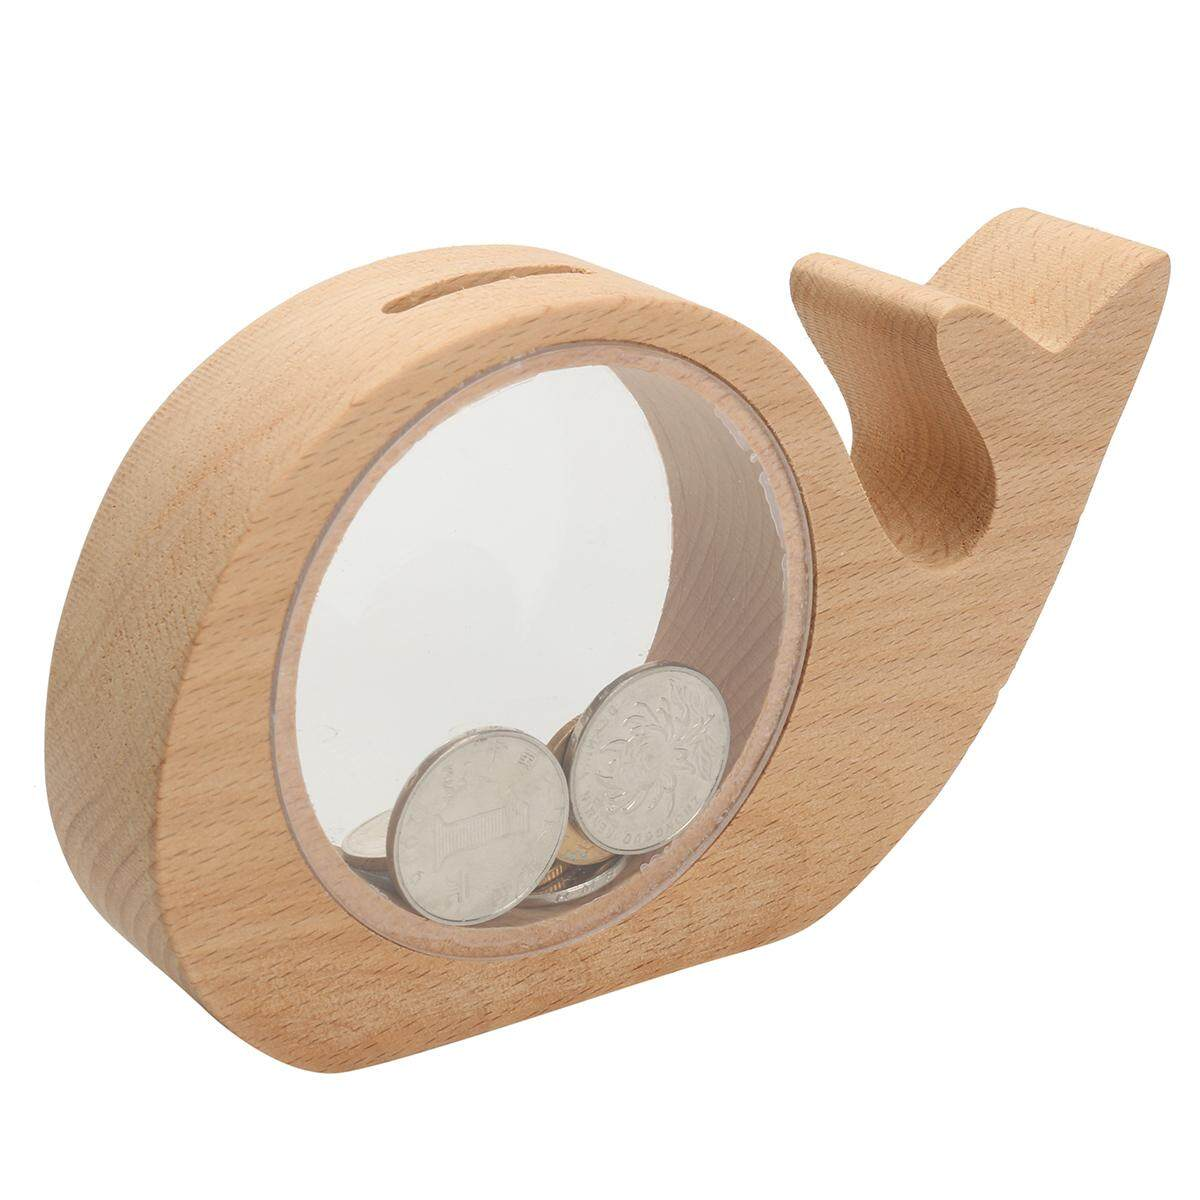 Creative Handcrafted Wooden Piggy Bank Saving Money Coin Box For Kids Gift By Moonbeam.